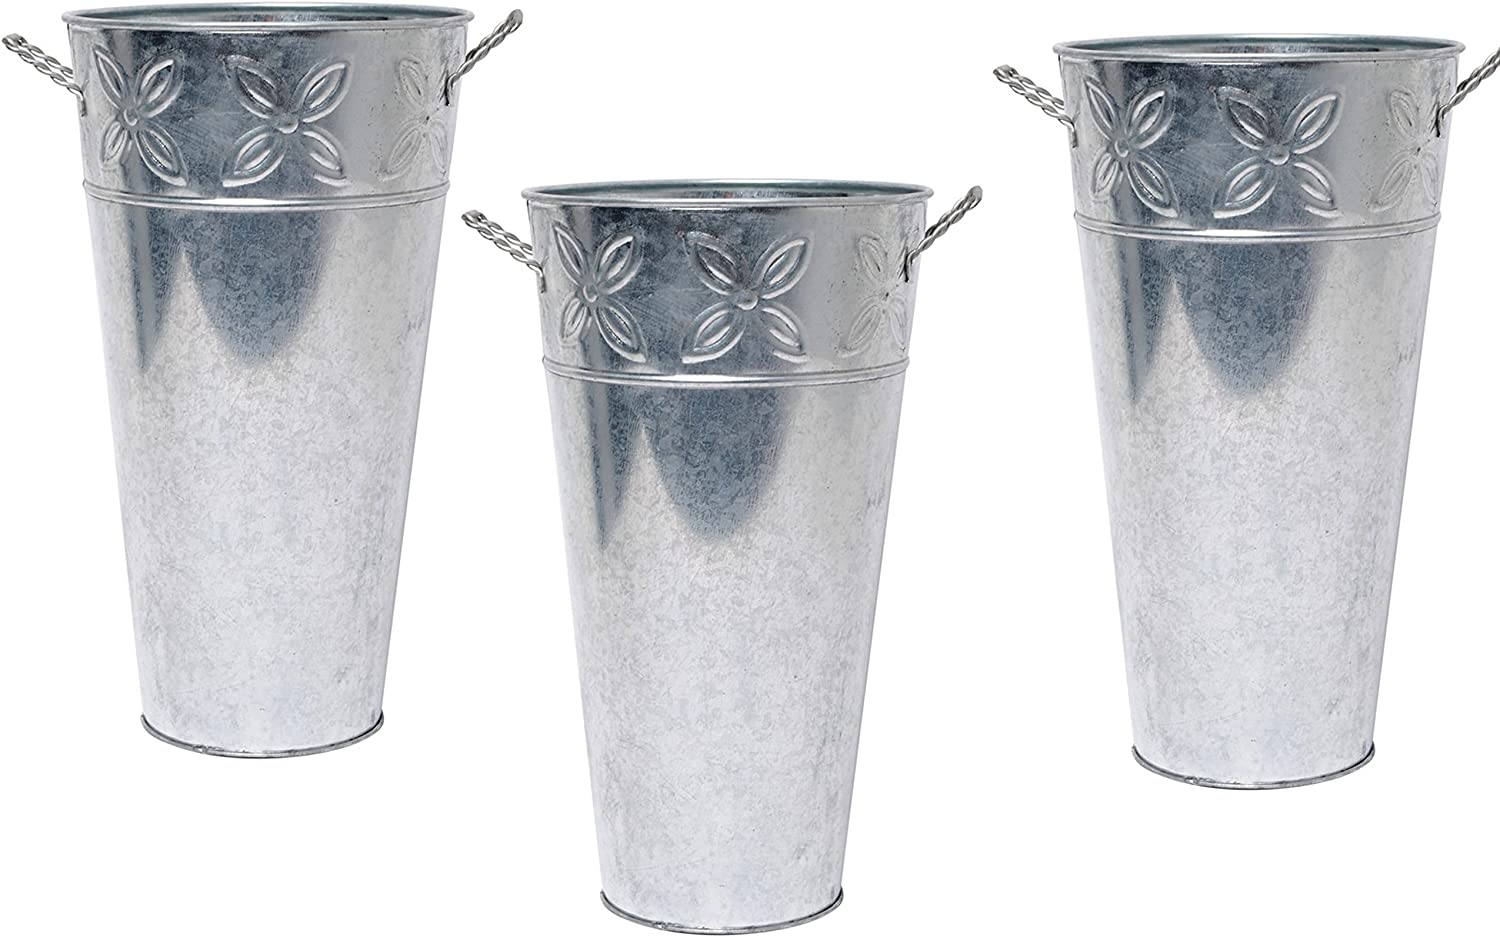 Hosley Set of 3 Galvanized Vases 12 Inch High Each French Bucket Design Ideal Gift for Wedding Special Events Aromatherapy Spa Reiki Meditation Settings O3